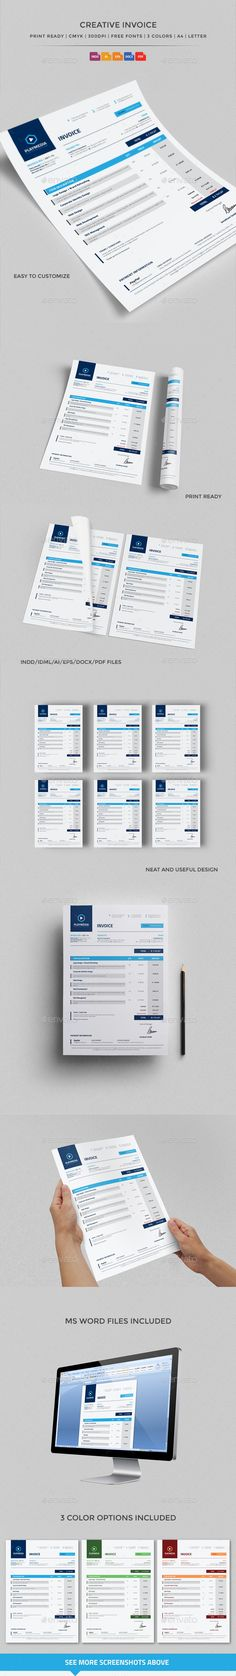 Proposal Template Microsoft Word Crown Invoice & Letterhead  Letterhead Template Crown And Template